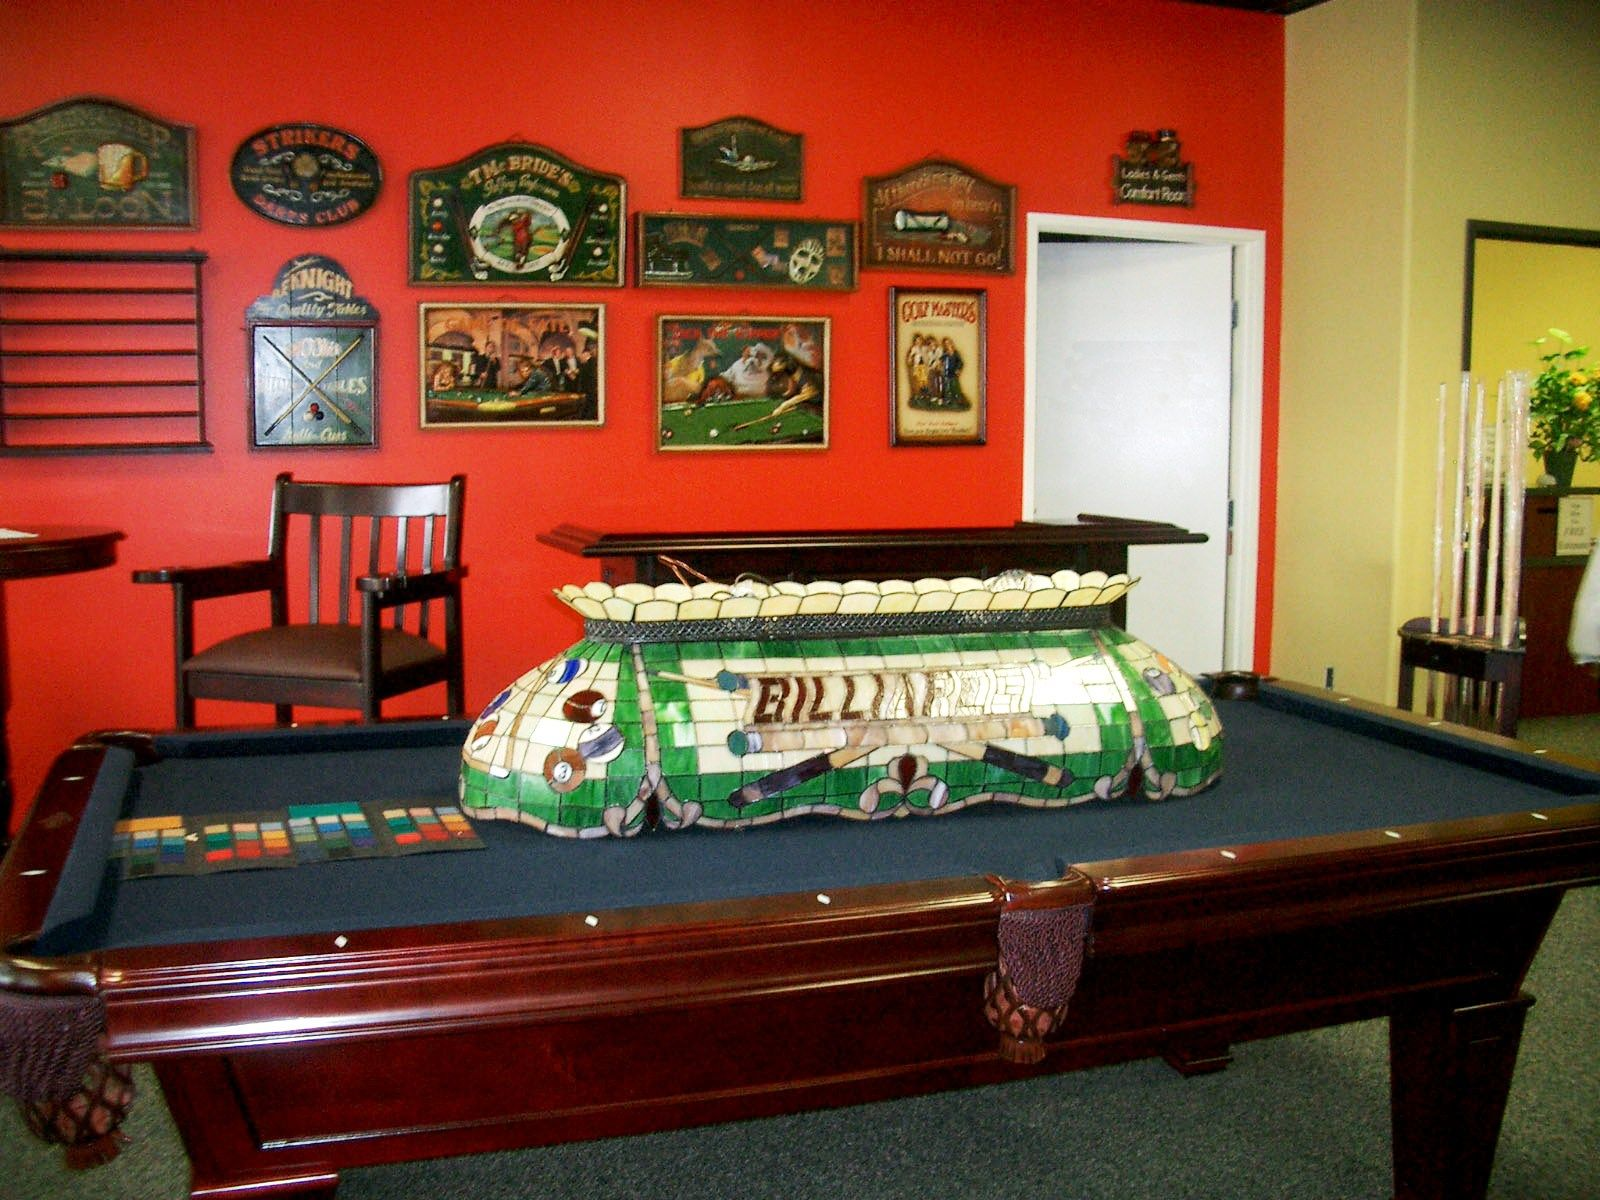 Pool Room Decorating Ideas best billiards room decor billiards room decor design ideas and decor cool billiard room Accessories Furniture Luxury Billiard Room Decorating Ideas With Awesome Dark Brown Wood Pool Table